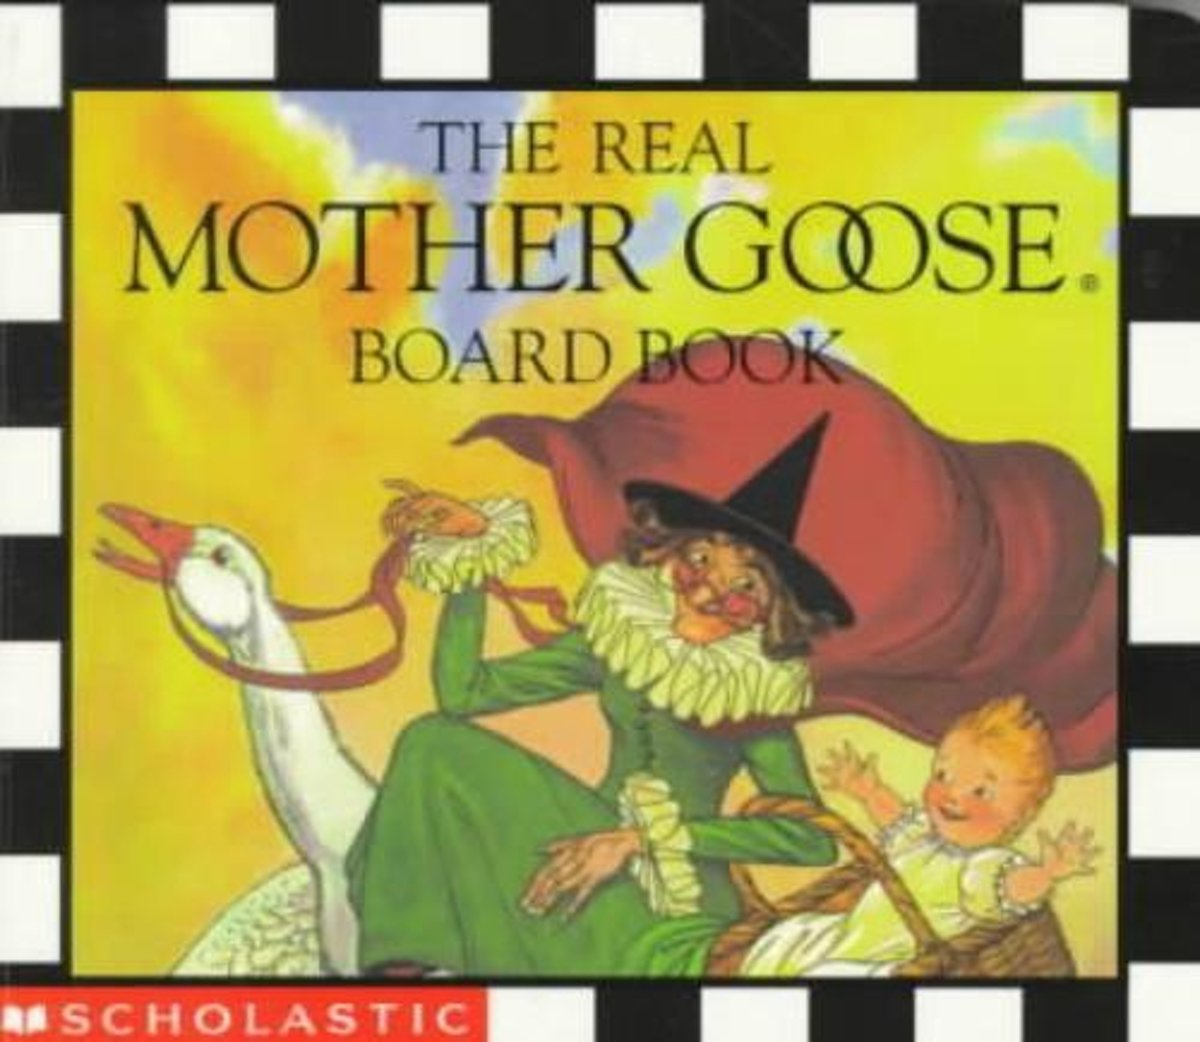 The Real Mother Goose Board Book